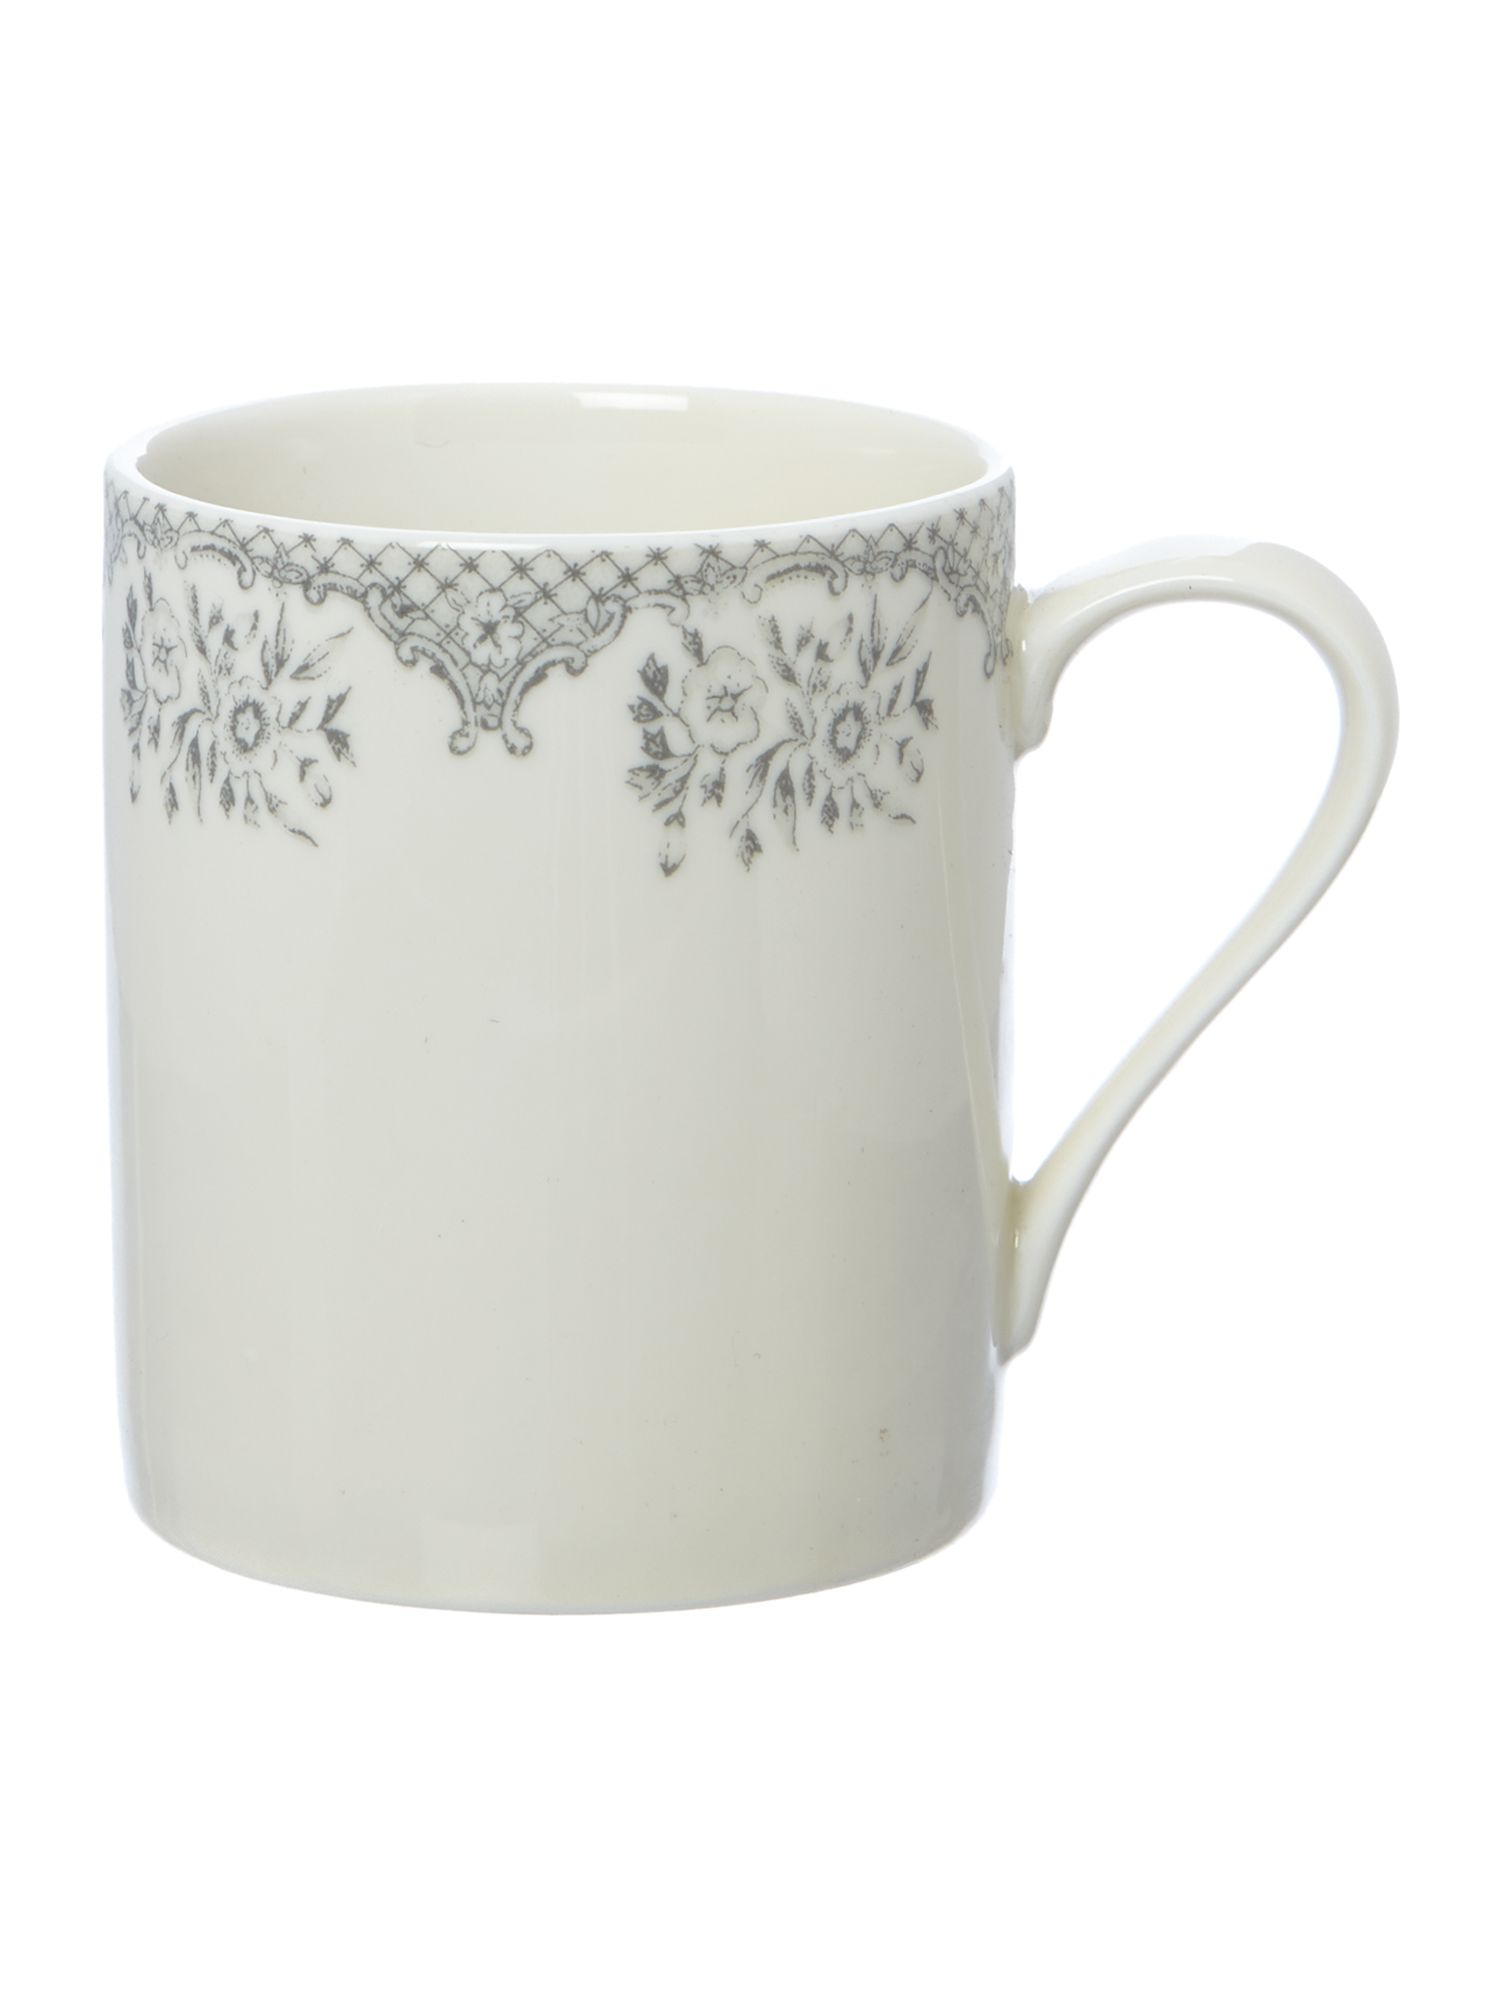 Kew grey large mug